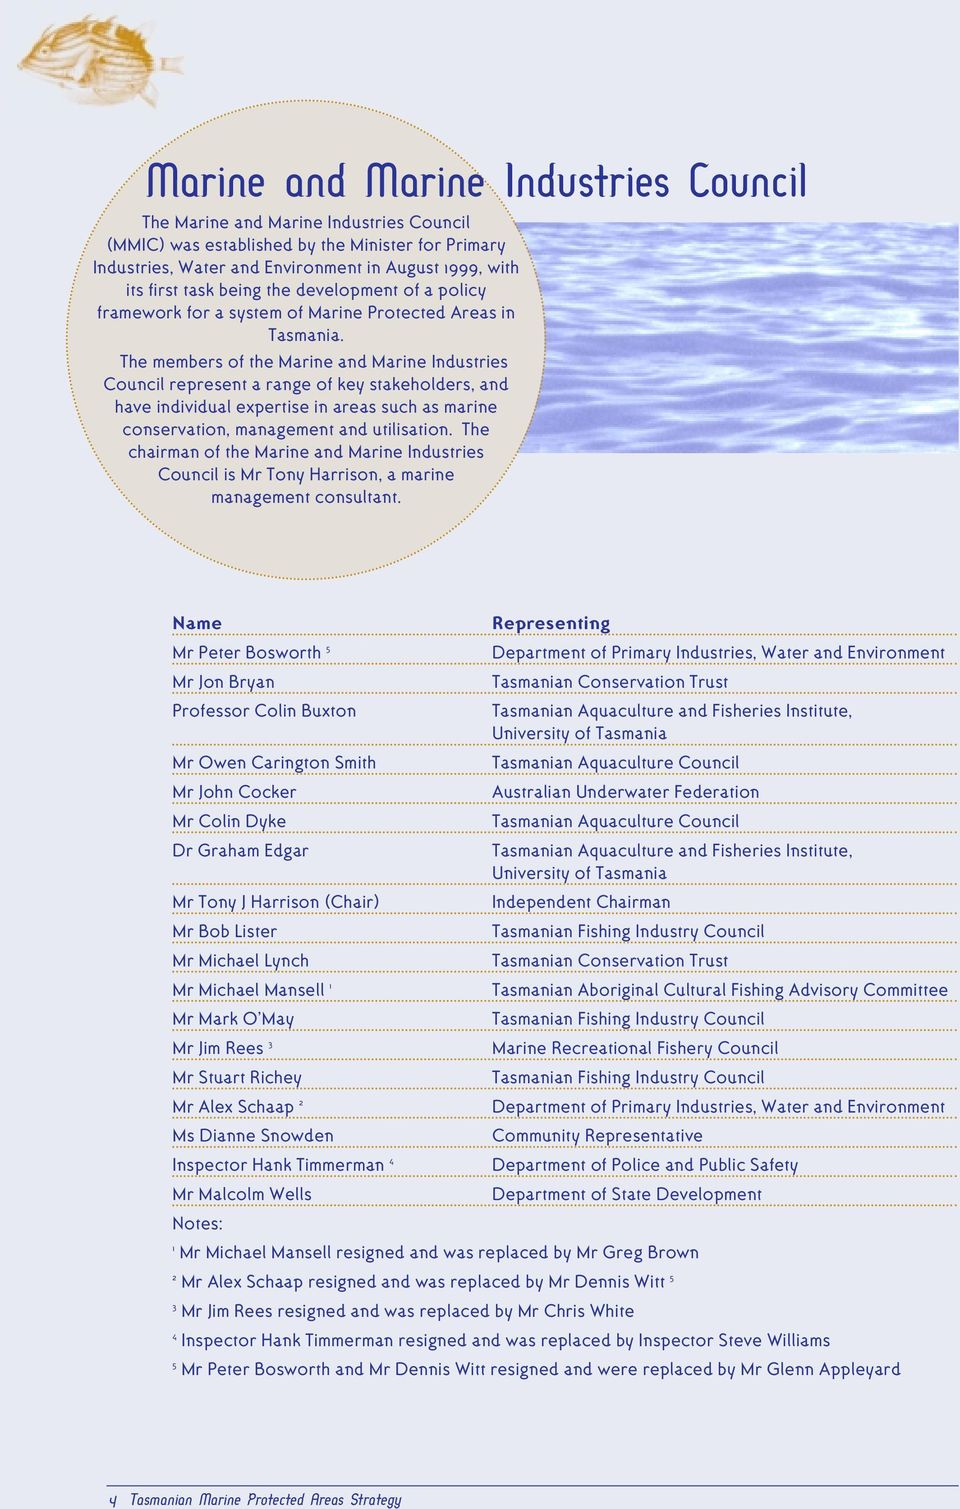 The members of the Marine and Marine Industries Council represent a range of key stakeholders, and have individual expertise in areas such as marine conservation, management and utilisation.